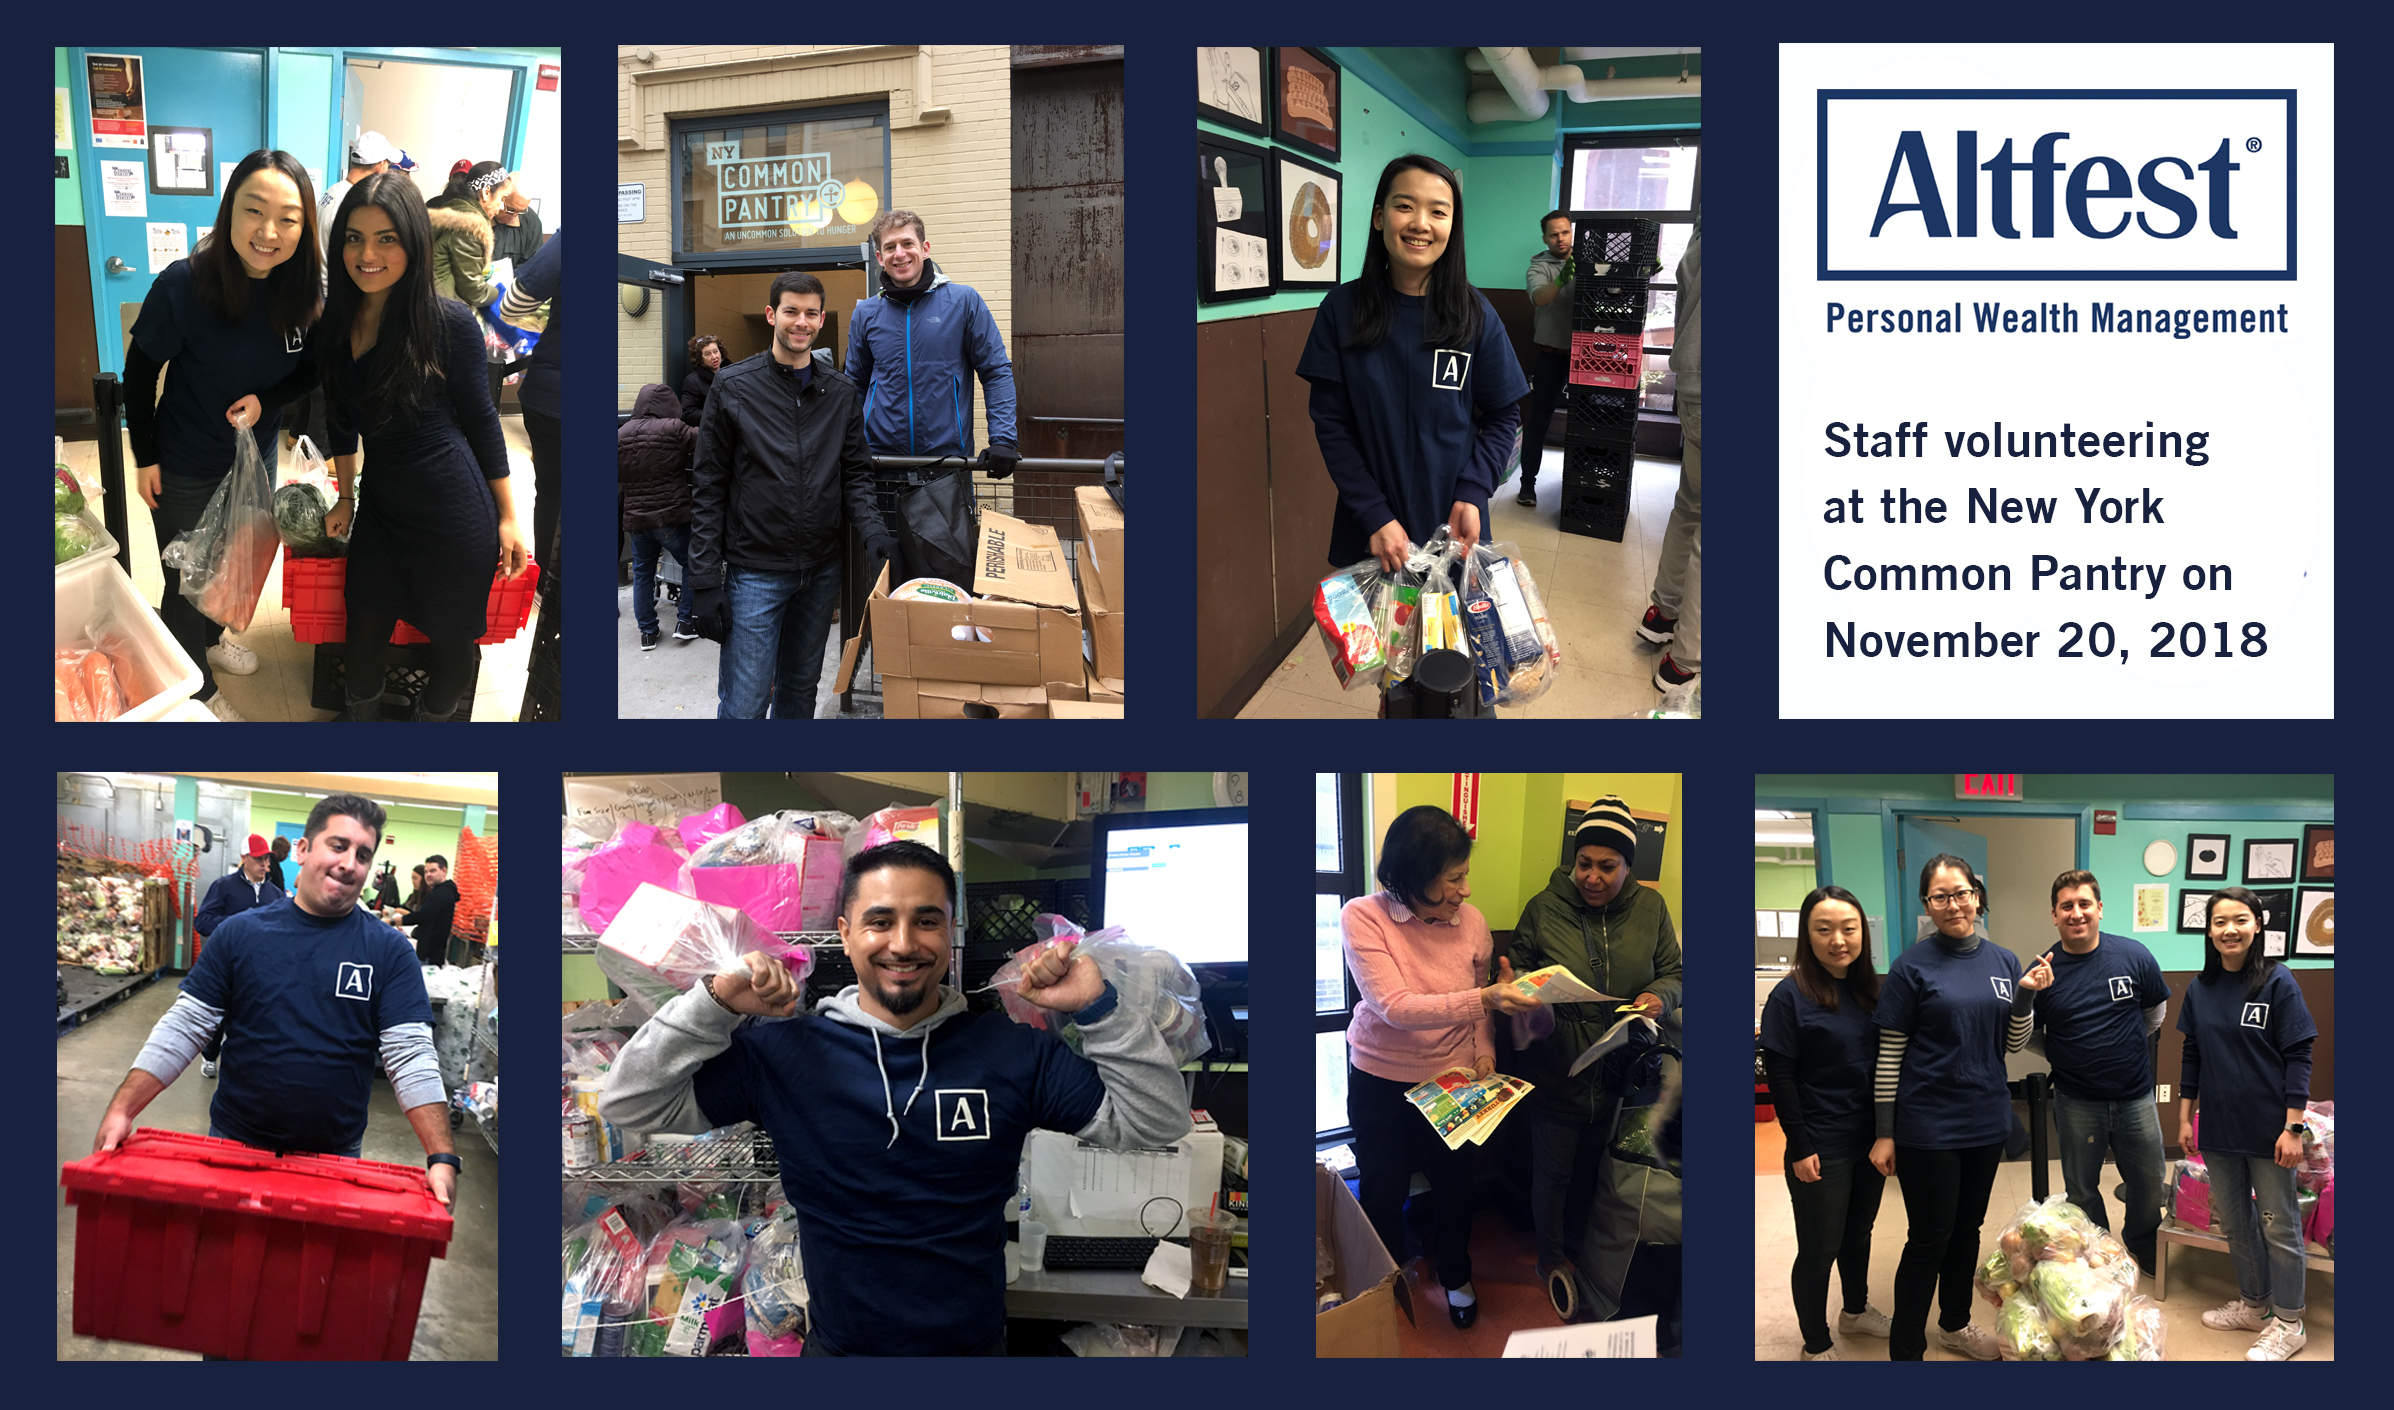 Altfest staff volunteering at the New York Common Pantry on November 20, 2018